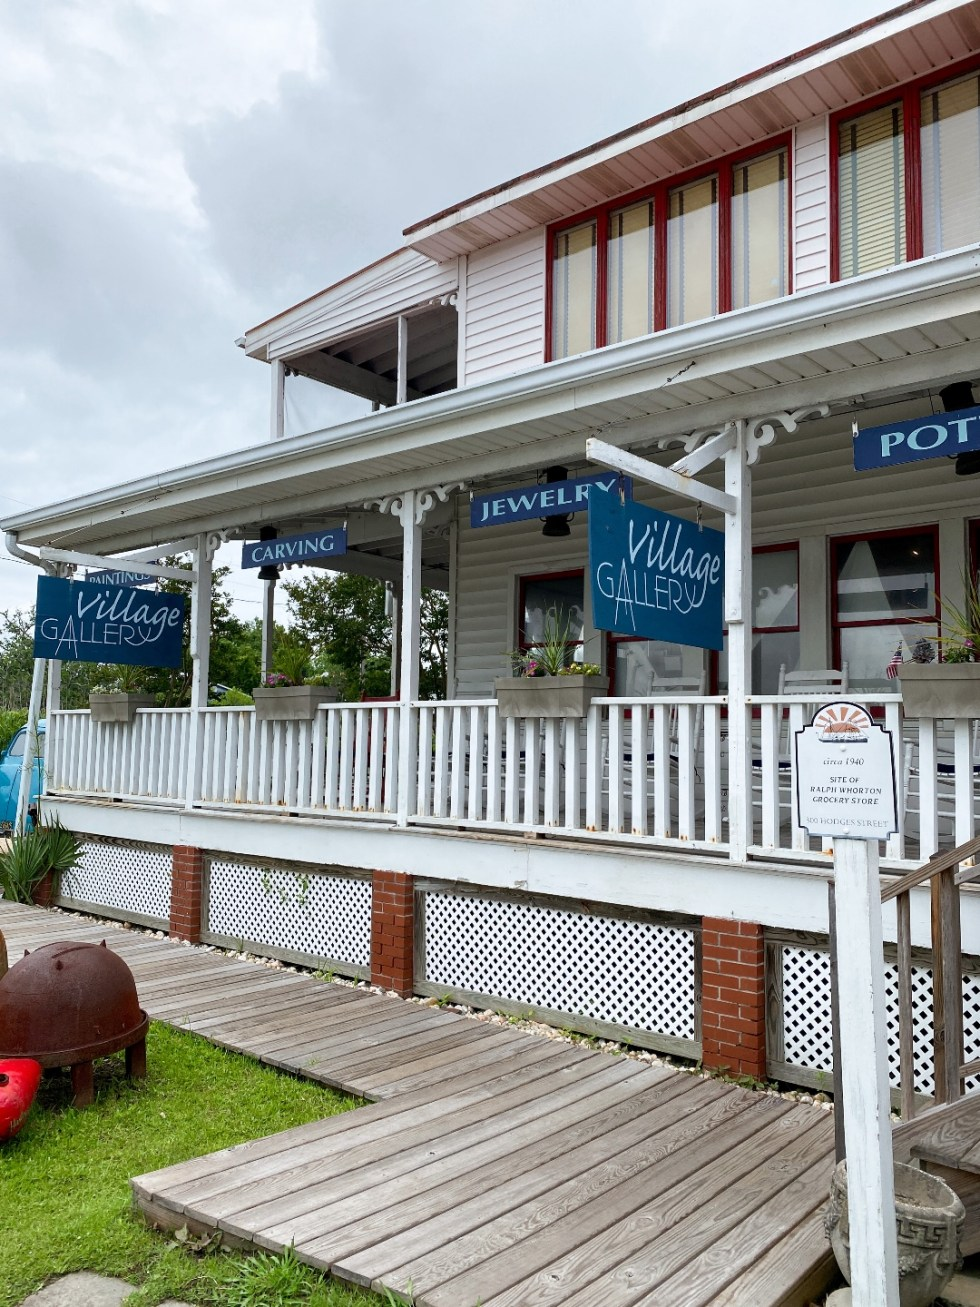 What to Do in Oriental, NC - I'm Fixin' To - @imfixintoblog | Things to do in Oriental NC by popular NC travel blog, I'm Fixin' To: image of the Oriental NC village gallery.